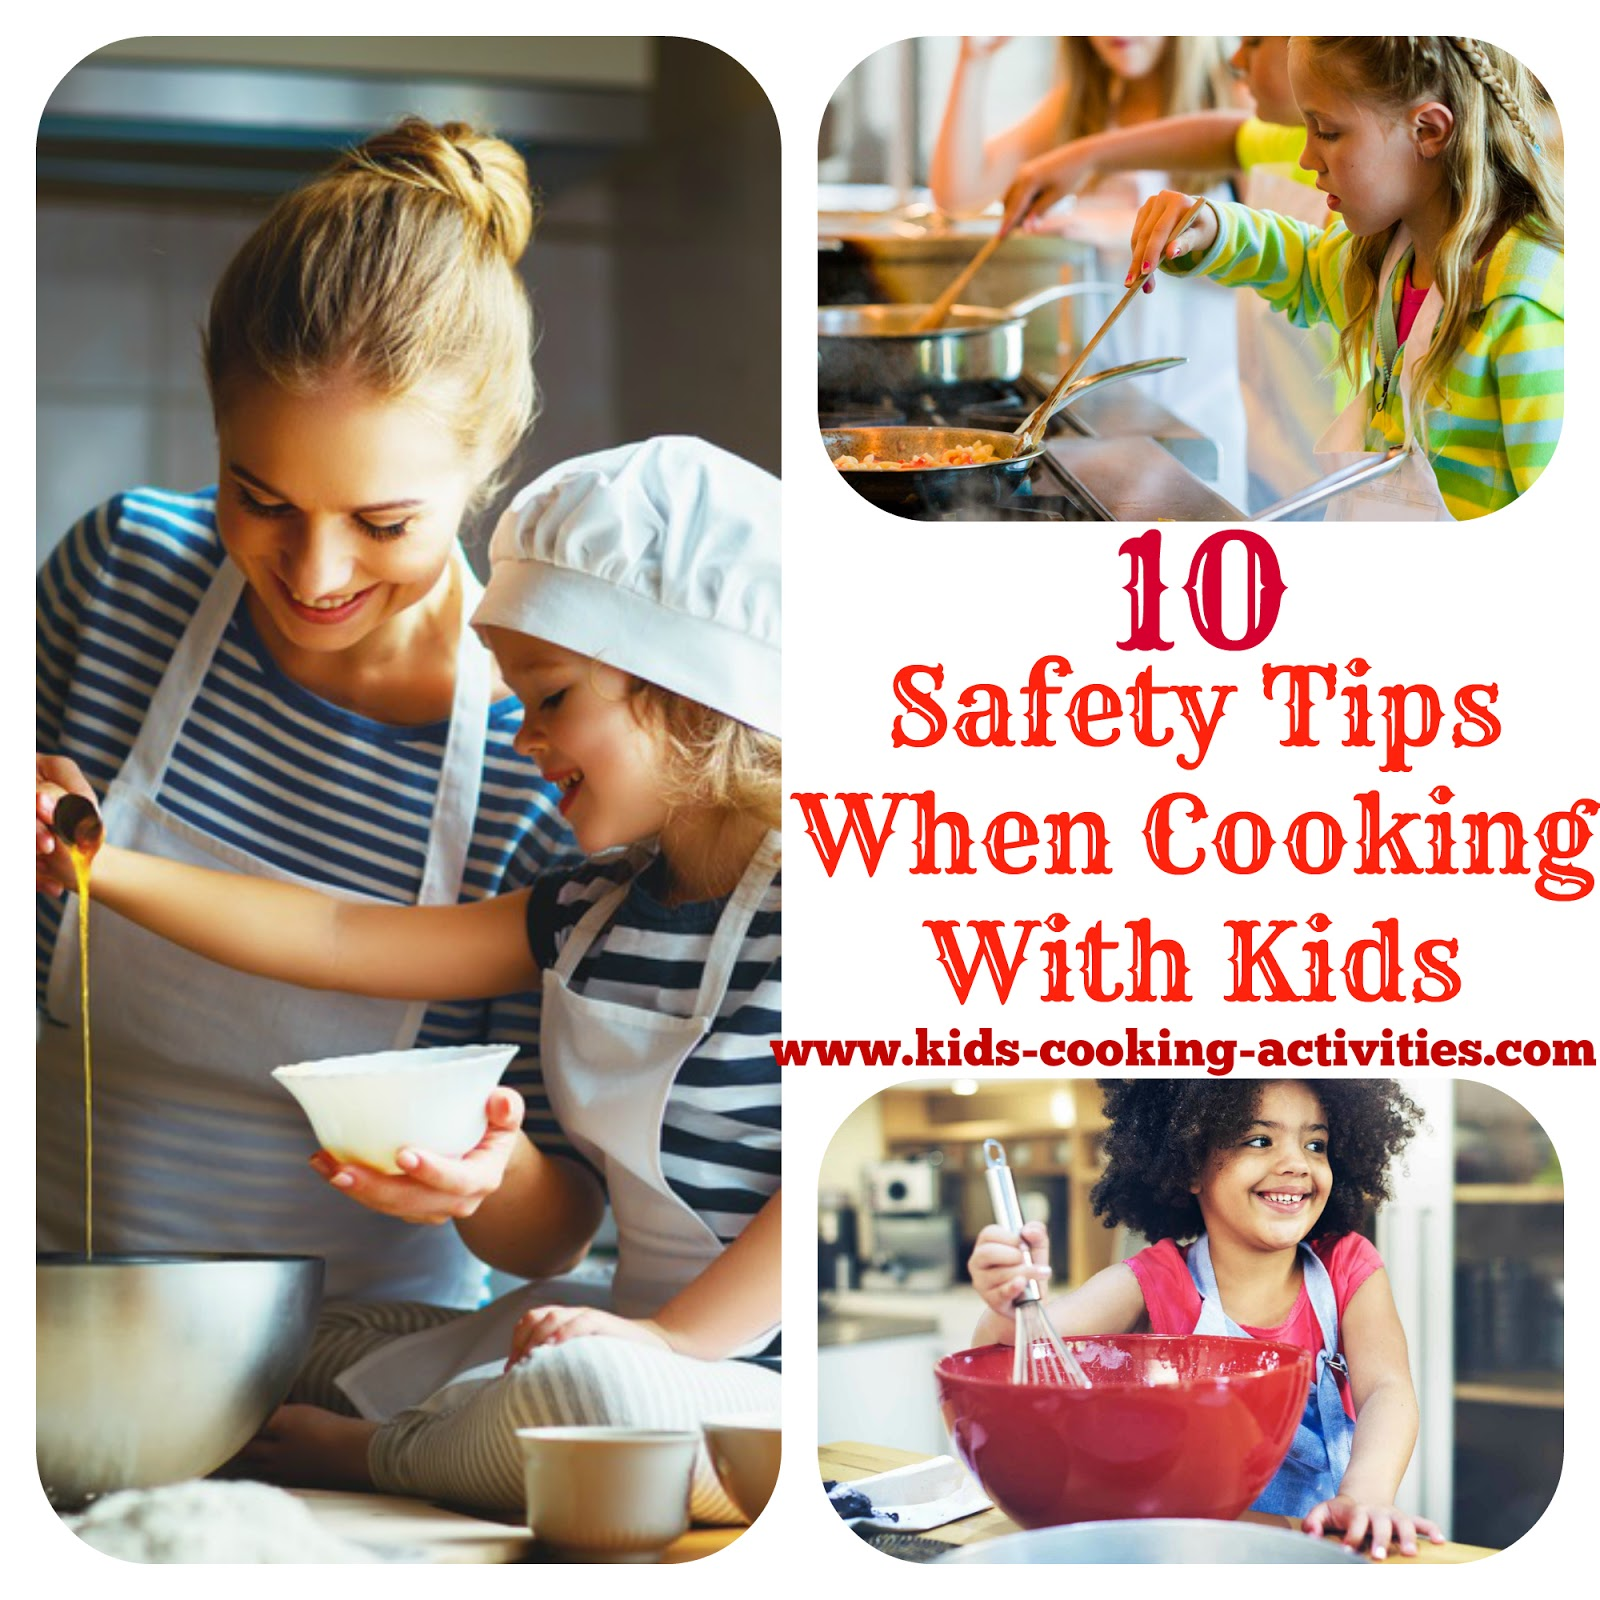 10 Safety Tips When Cooking With Kids